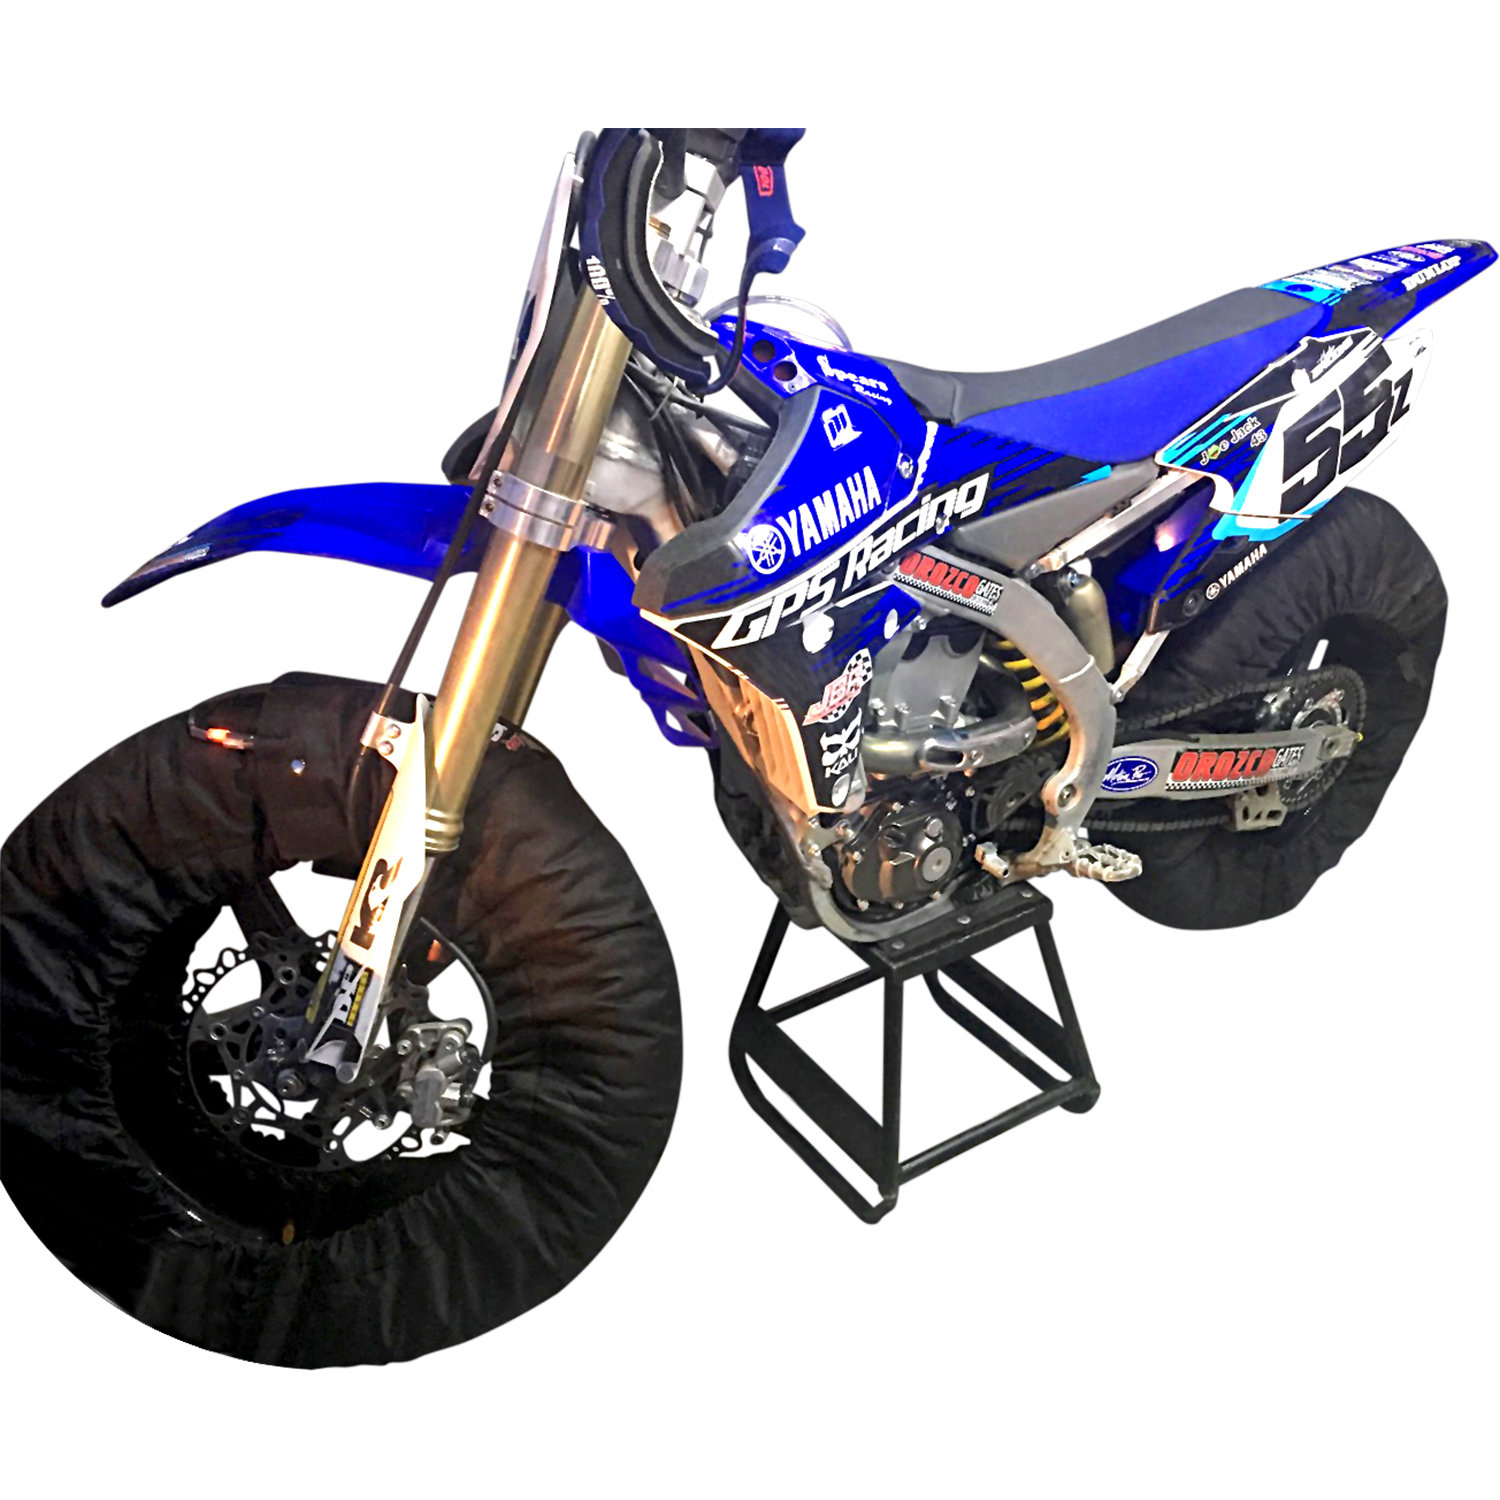 19 Inch Flat Track, 2020 Series 3 Temp Tire Warmers - 19 Inch Front and Rear Wheels